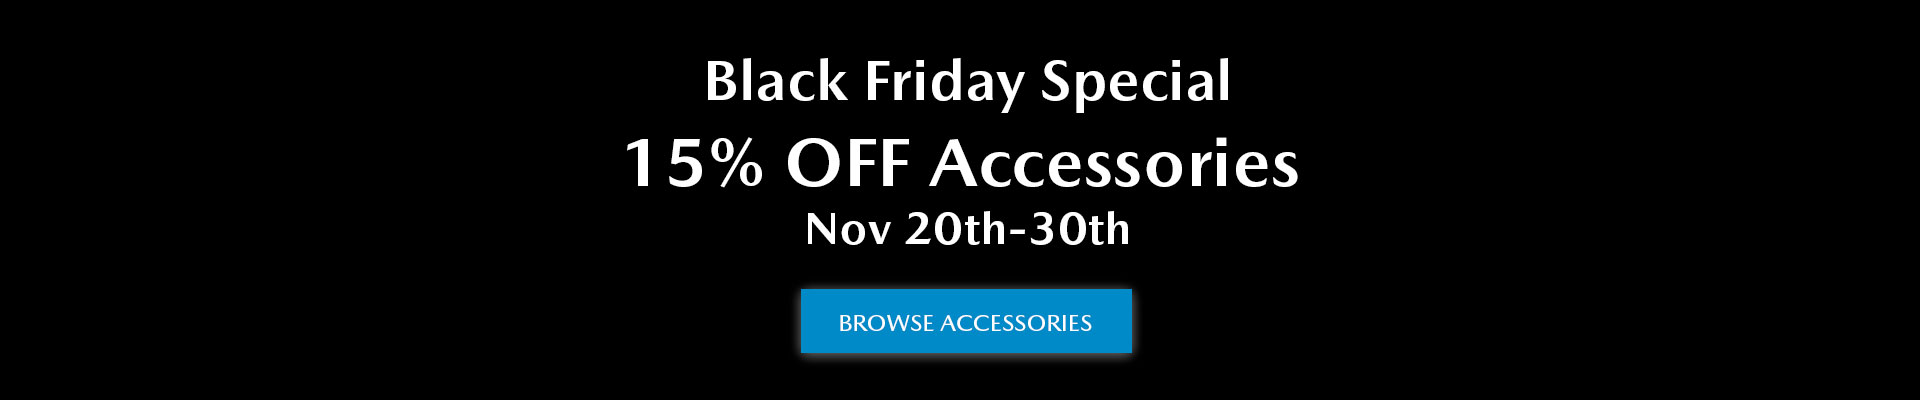 Black Friday Accessories Special